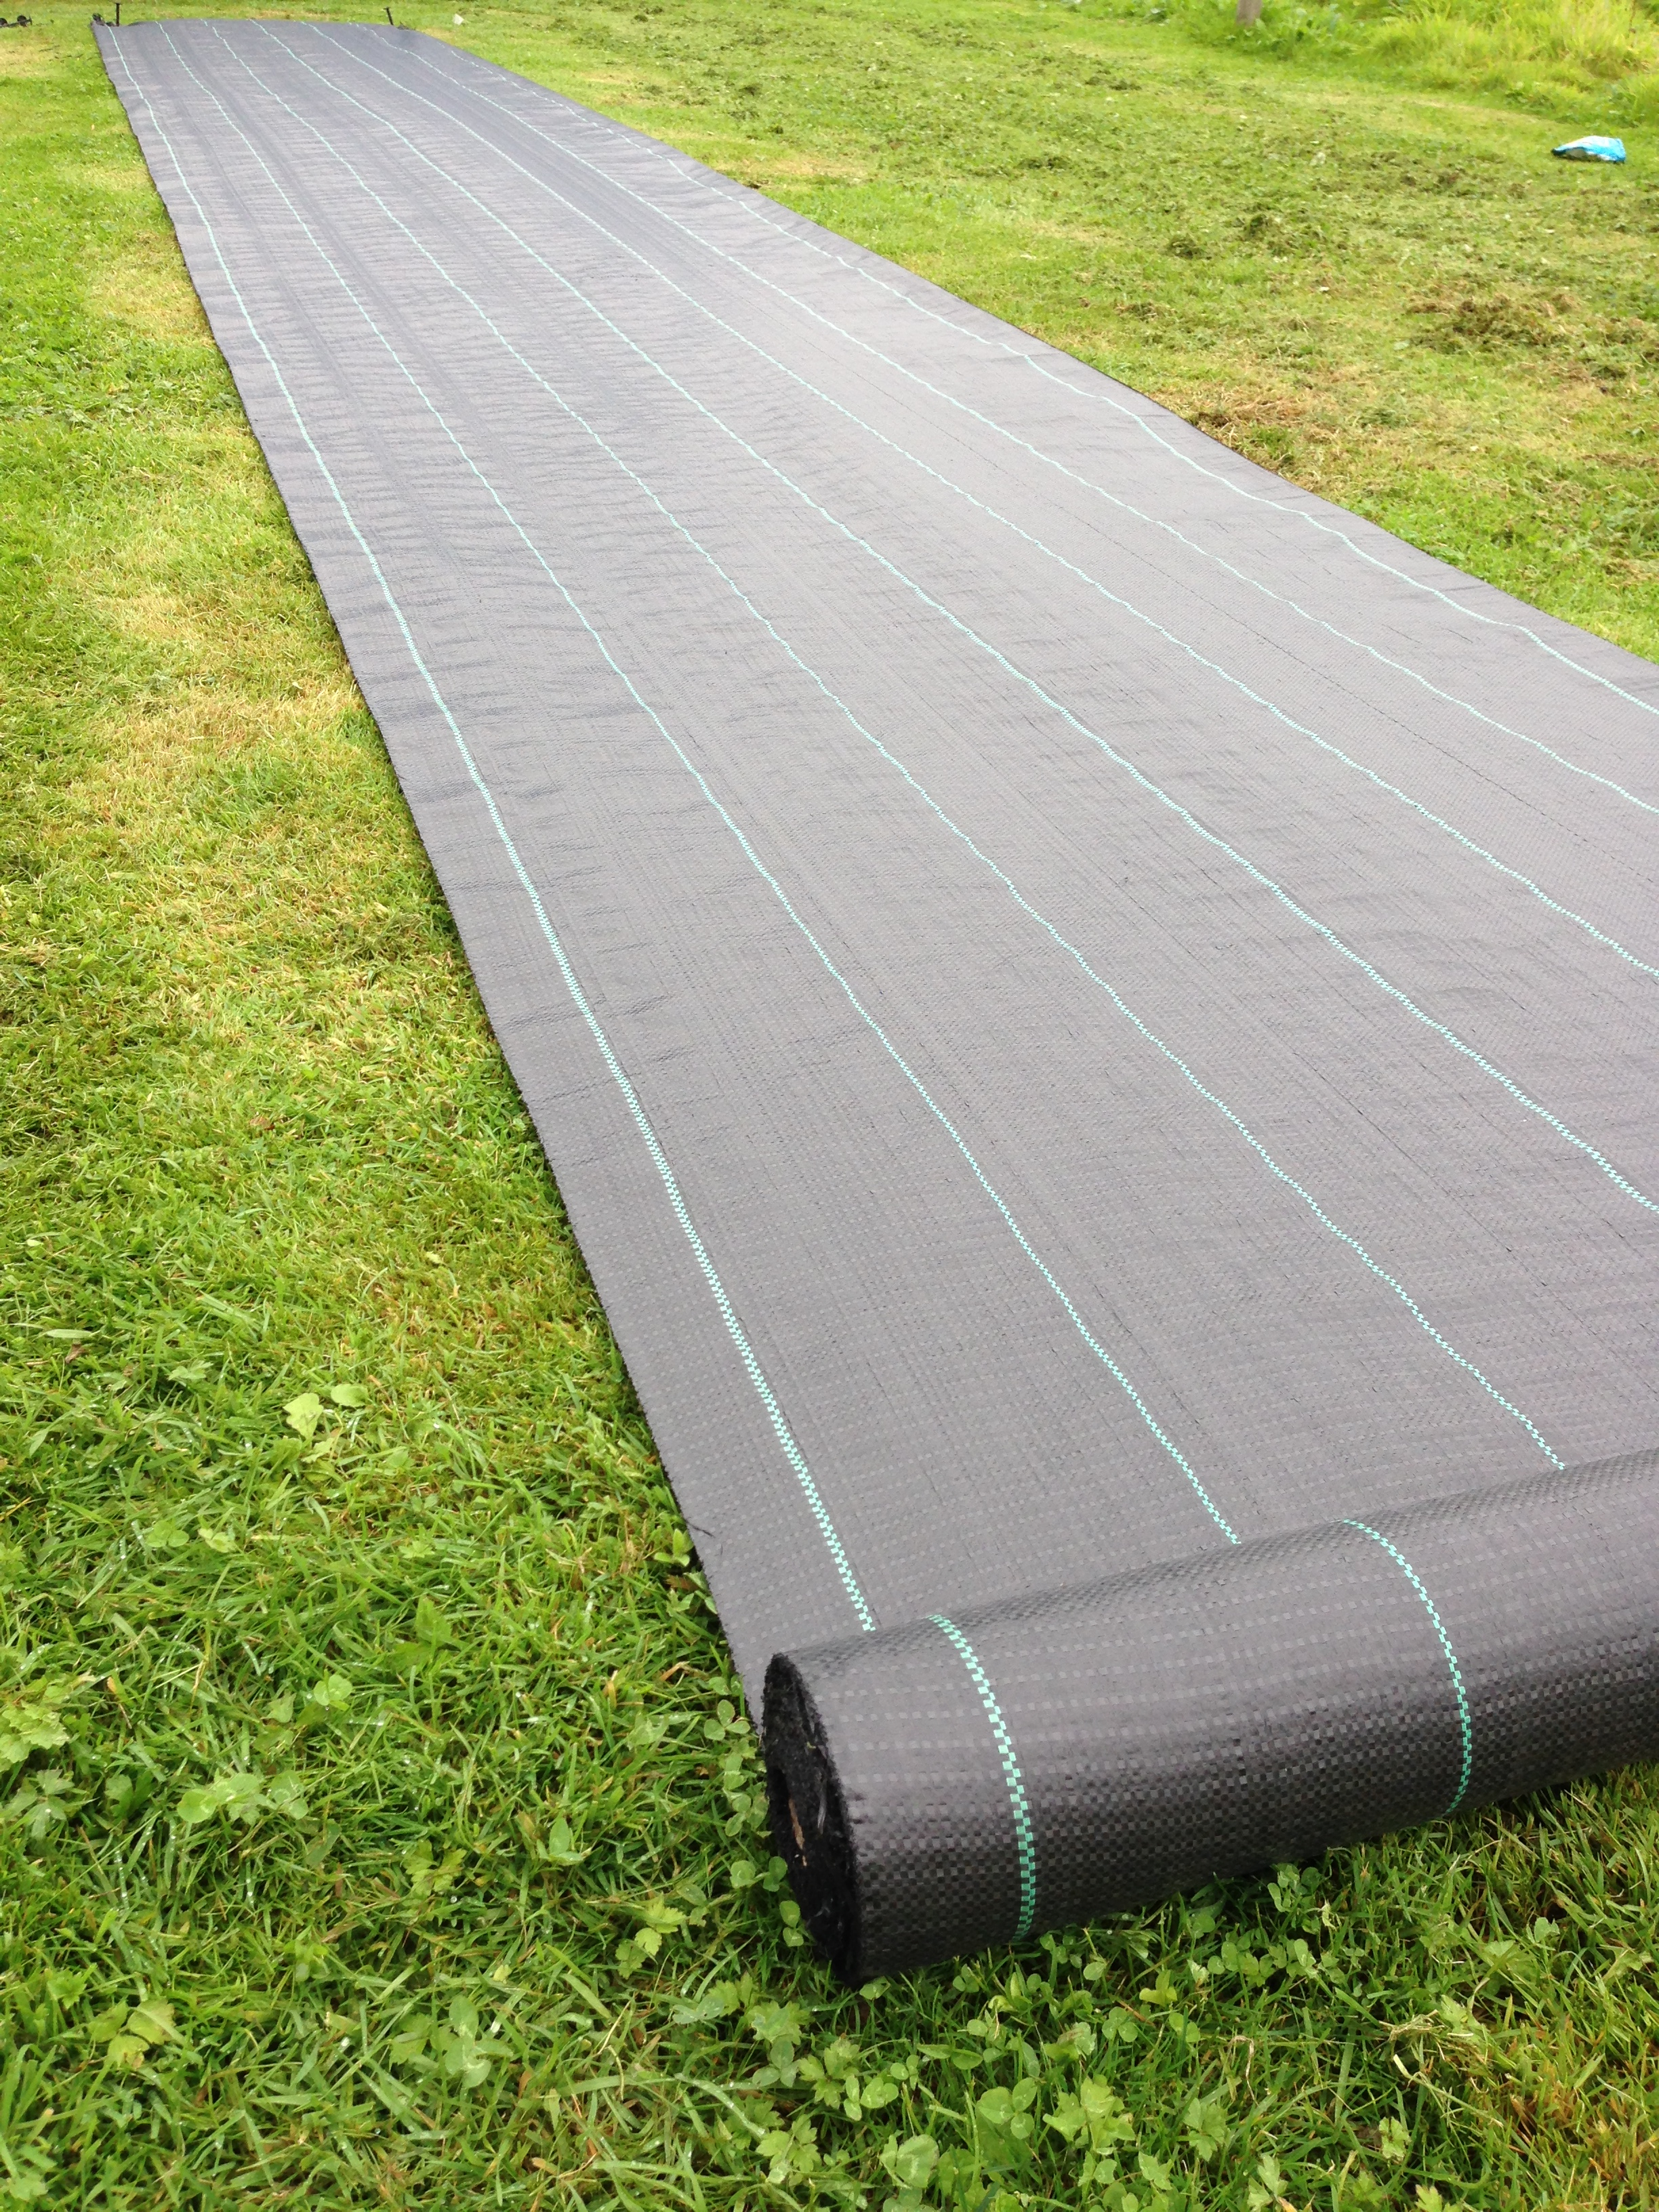 100gsm-Yuzet-Weed-Control-Fabric-Ground-Cover-Membrane-Garden-landscape-mulch thumbnail 6